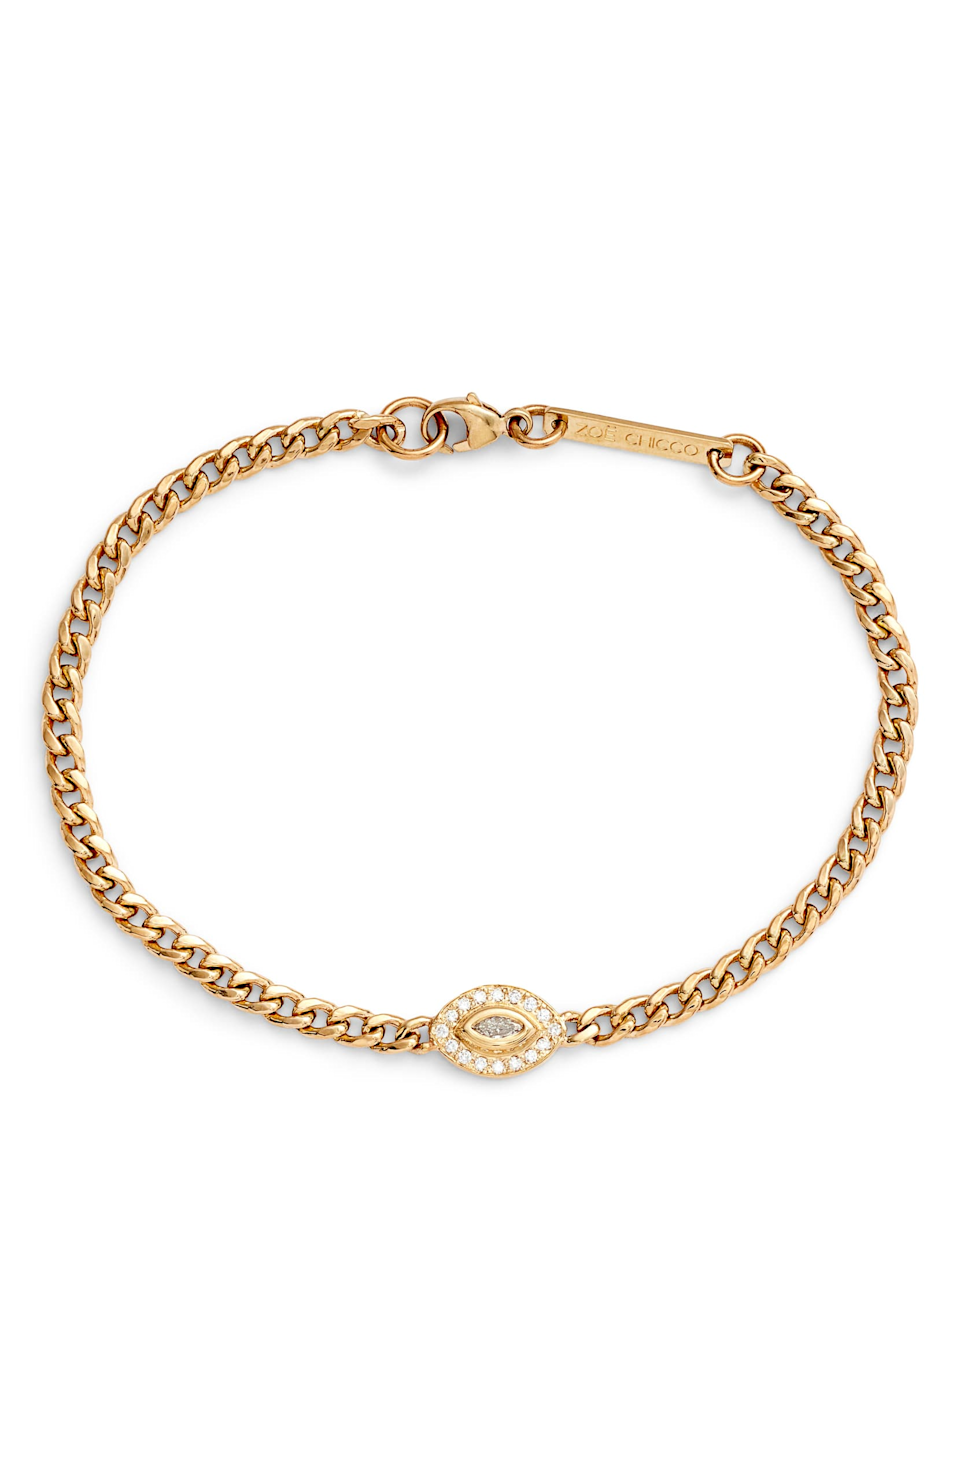 "<br> <br> <strong>Zoë Chicco</strong> Halo Chain Chain Bracelet, $, available at <a href=""https://go.skimresources.com/?id=30283X879131&url=https%3A%2F%2Fshop.nordstrom.com%2Fs%2Fzoe-chicco-paris-diamond-halo-chain-chain-bracelet%2F5433211%3Forigin%3Dkeywordsearch-personalizedsort%26breadcrumb%3DHome%252FAll%2520Results%26color%3Dyellow%2520gold"" rel=""nofollow noopener"" target=""_blank"" data-ylk=""slk:Nordstrom"" class=""link rapid-noclick-resp"">Nordstrom</a>"